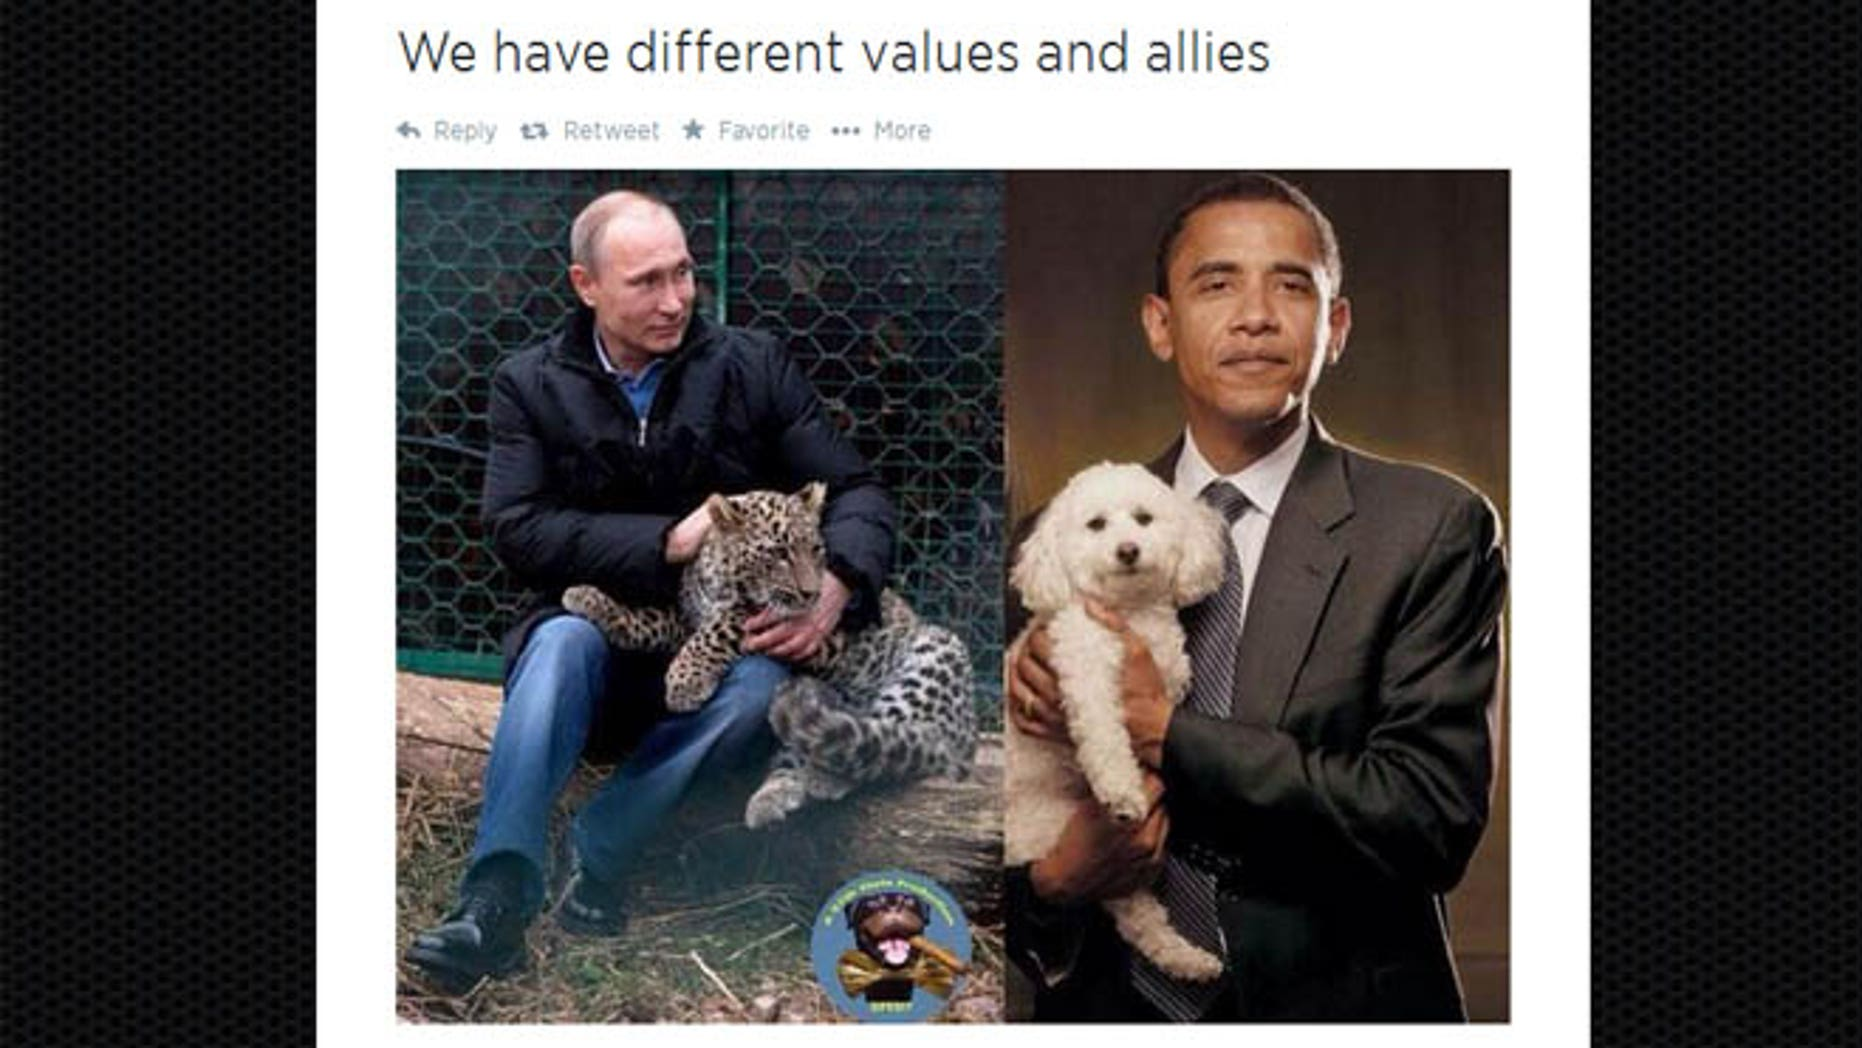 The image here was tweeted by Russia's deputy prime minister Dmitry Rogozin.